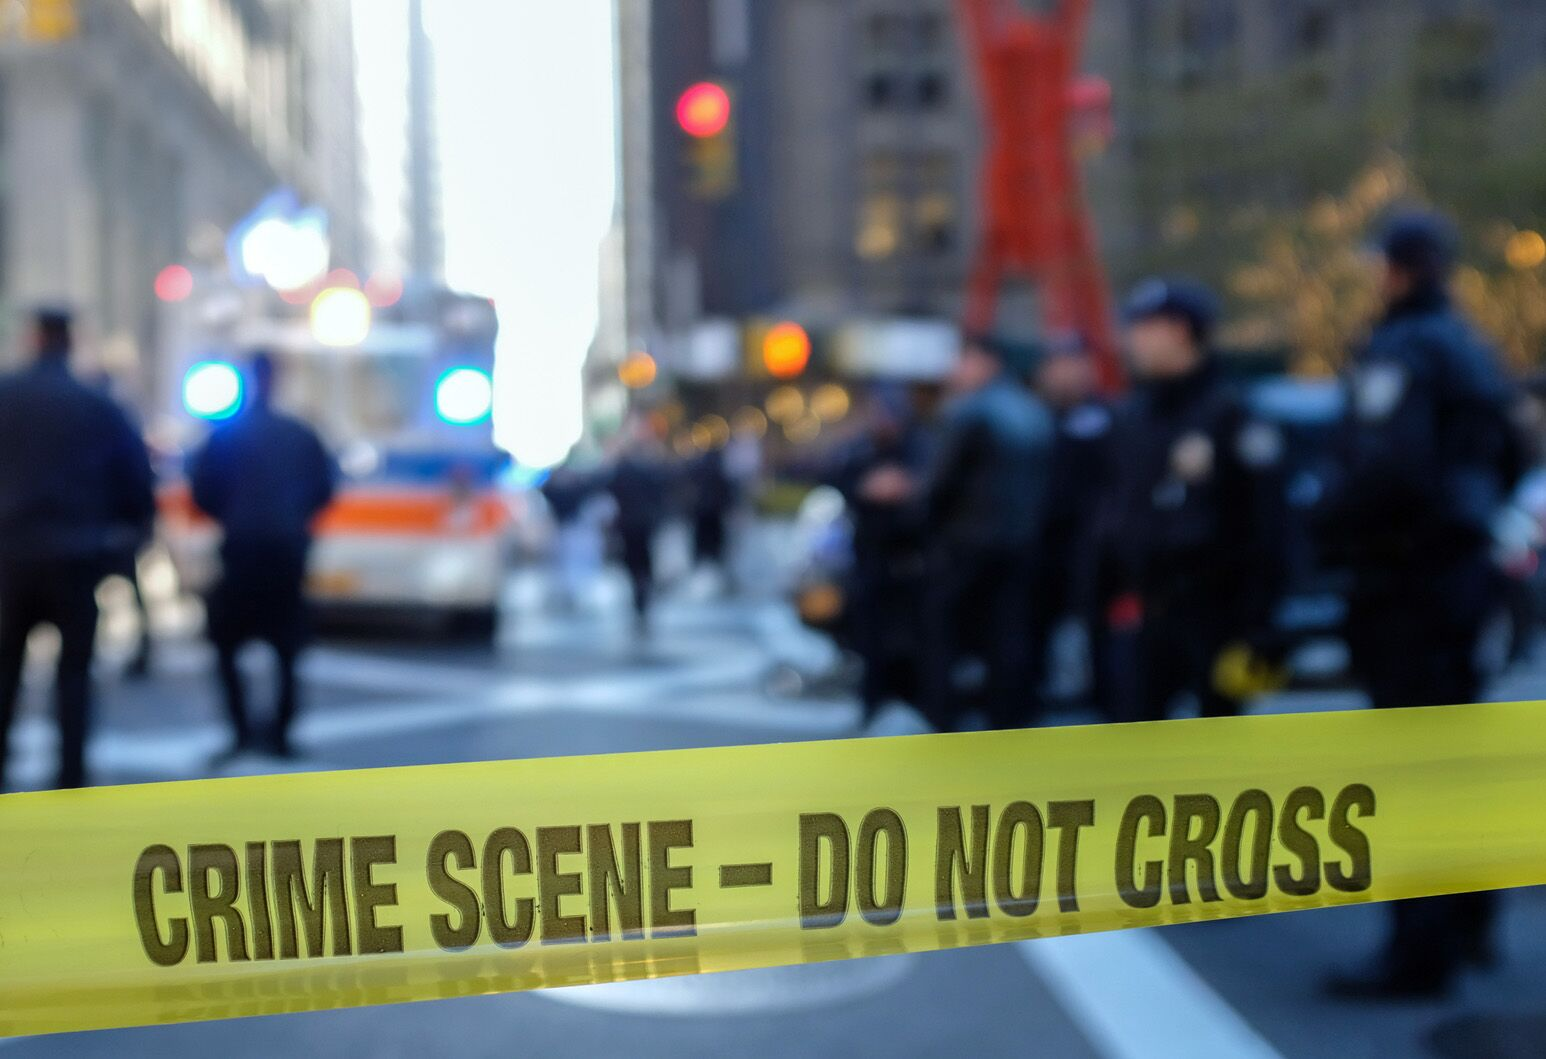 Yellow police tape closes off a crime scene. Curtis Reisinger, PhD, calls for more action in decreasing police suicides.